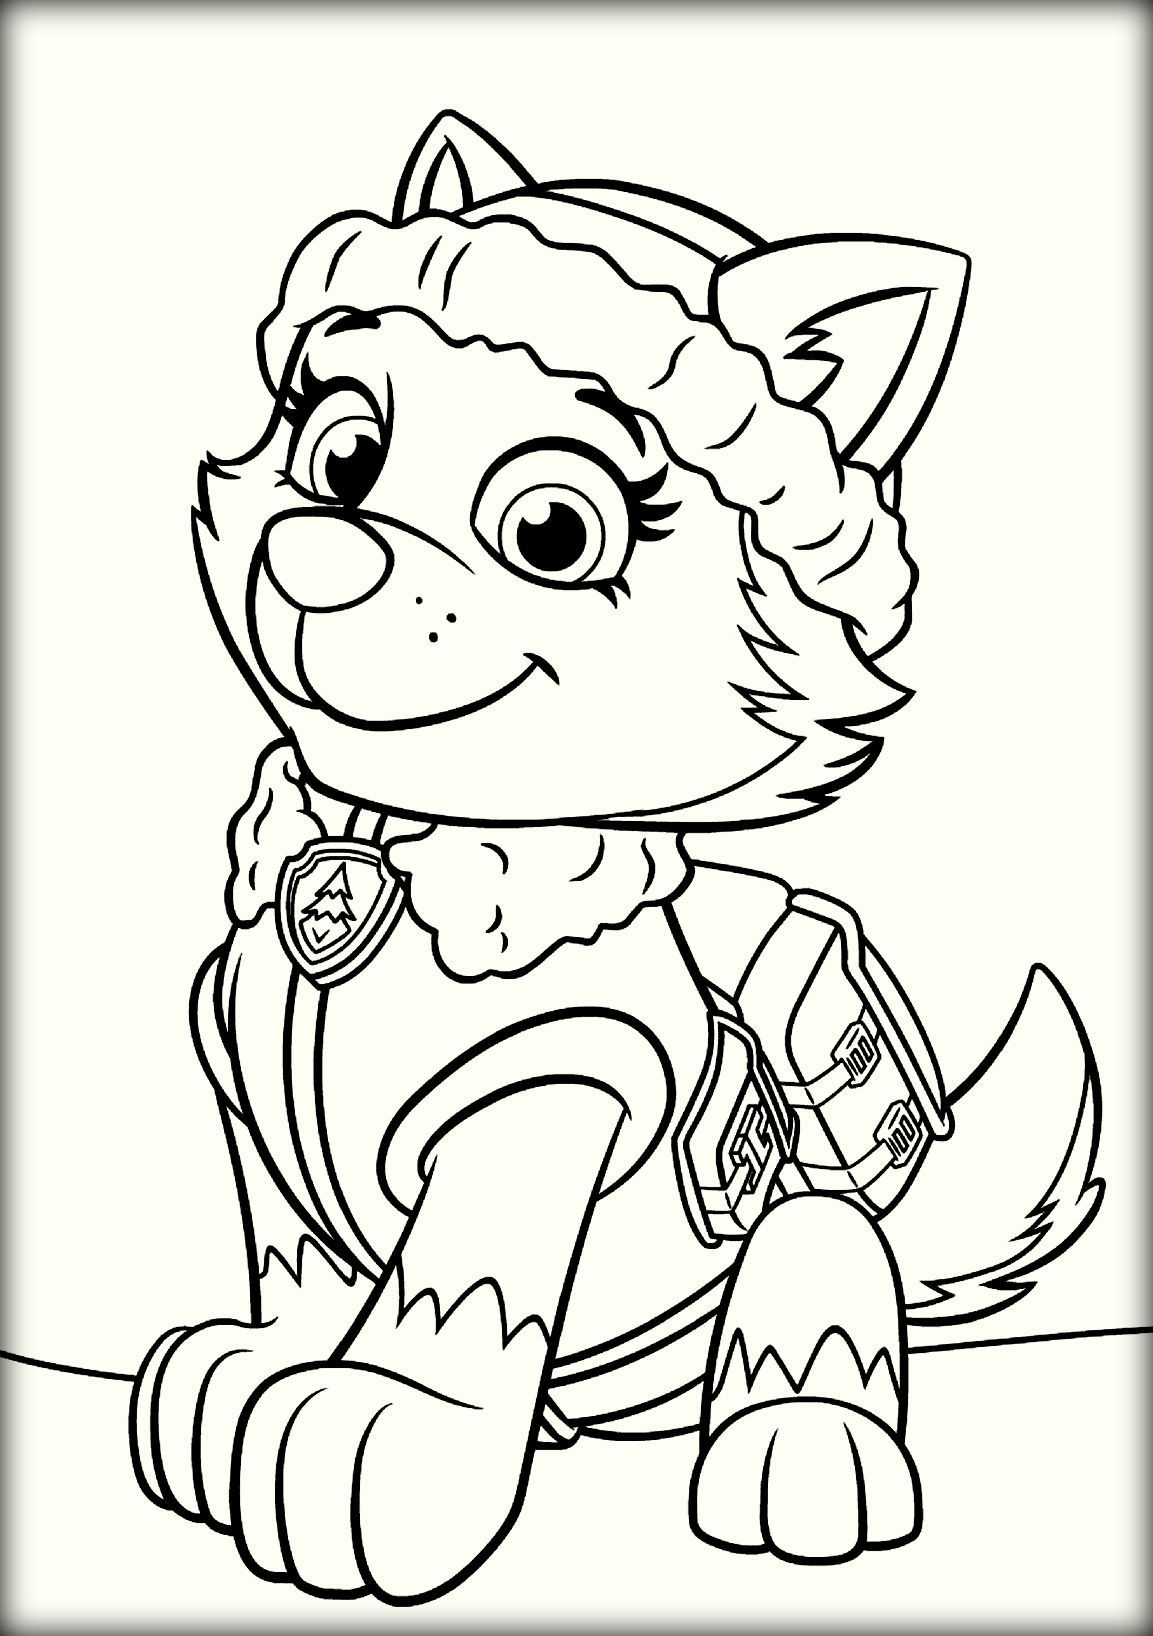 Paw patrol katie and ryder fanfiction